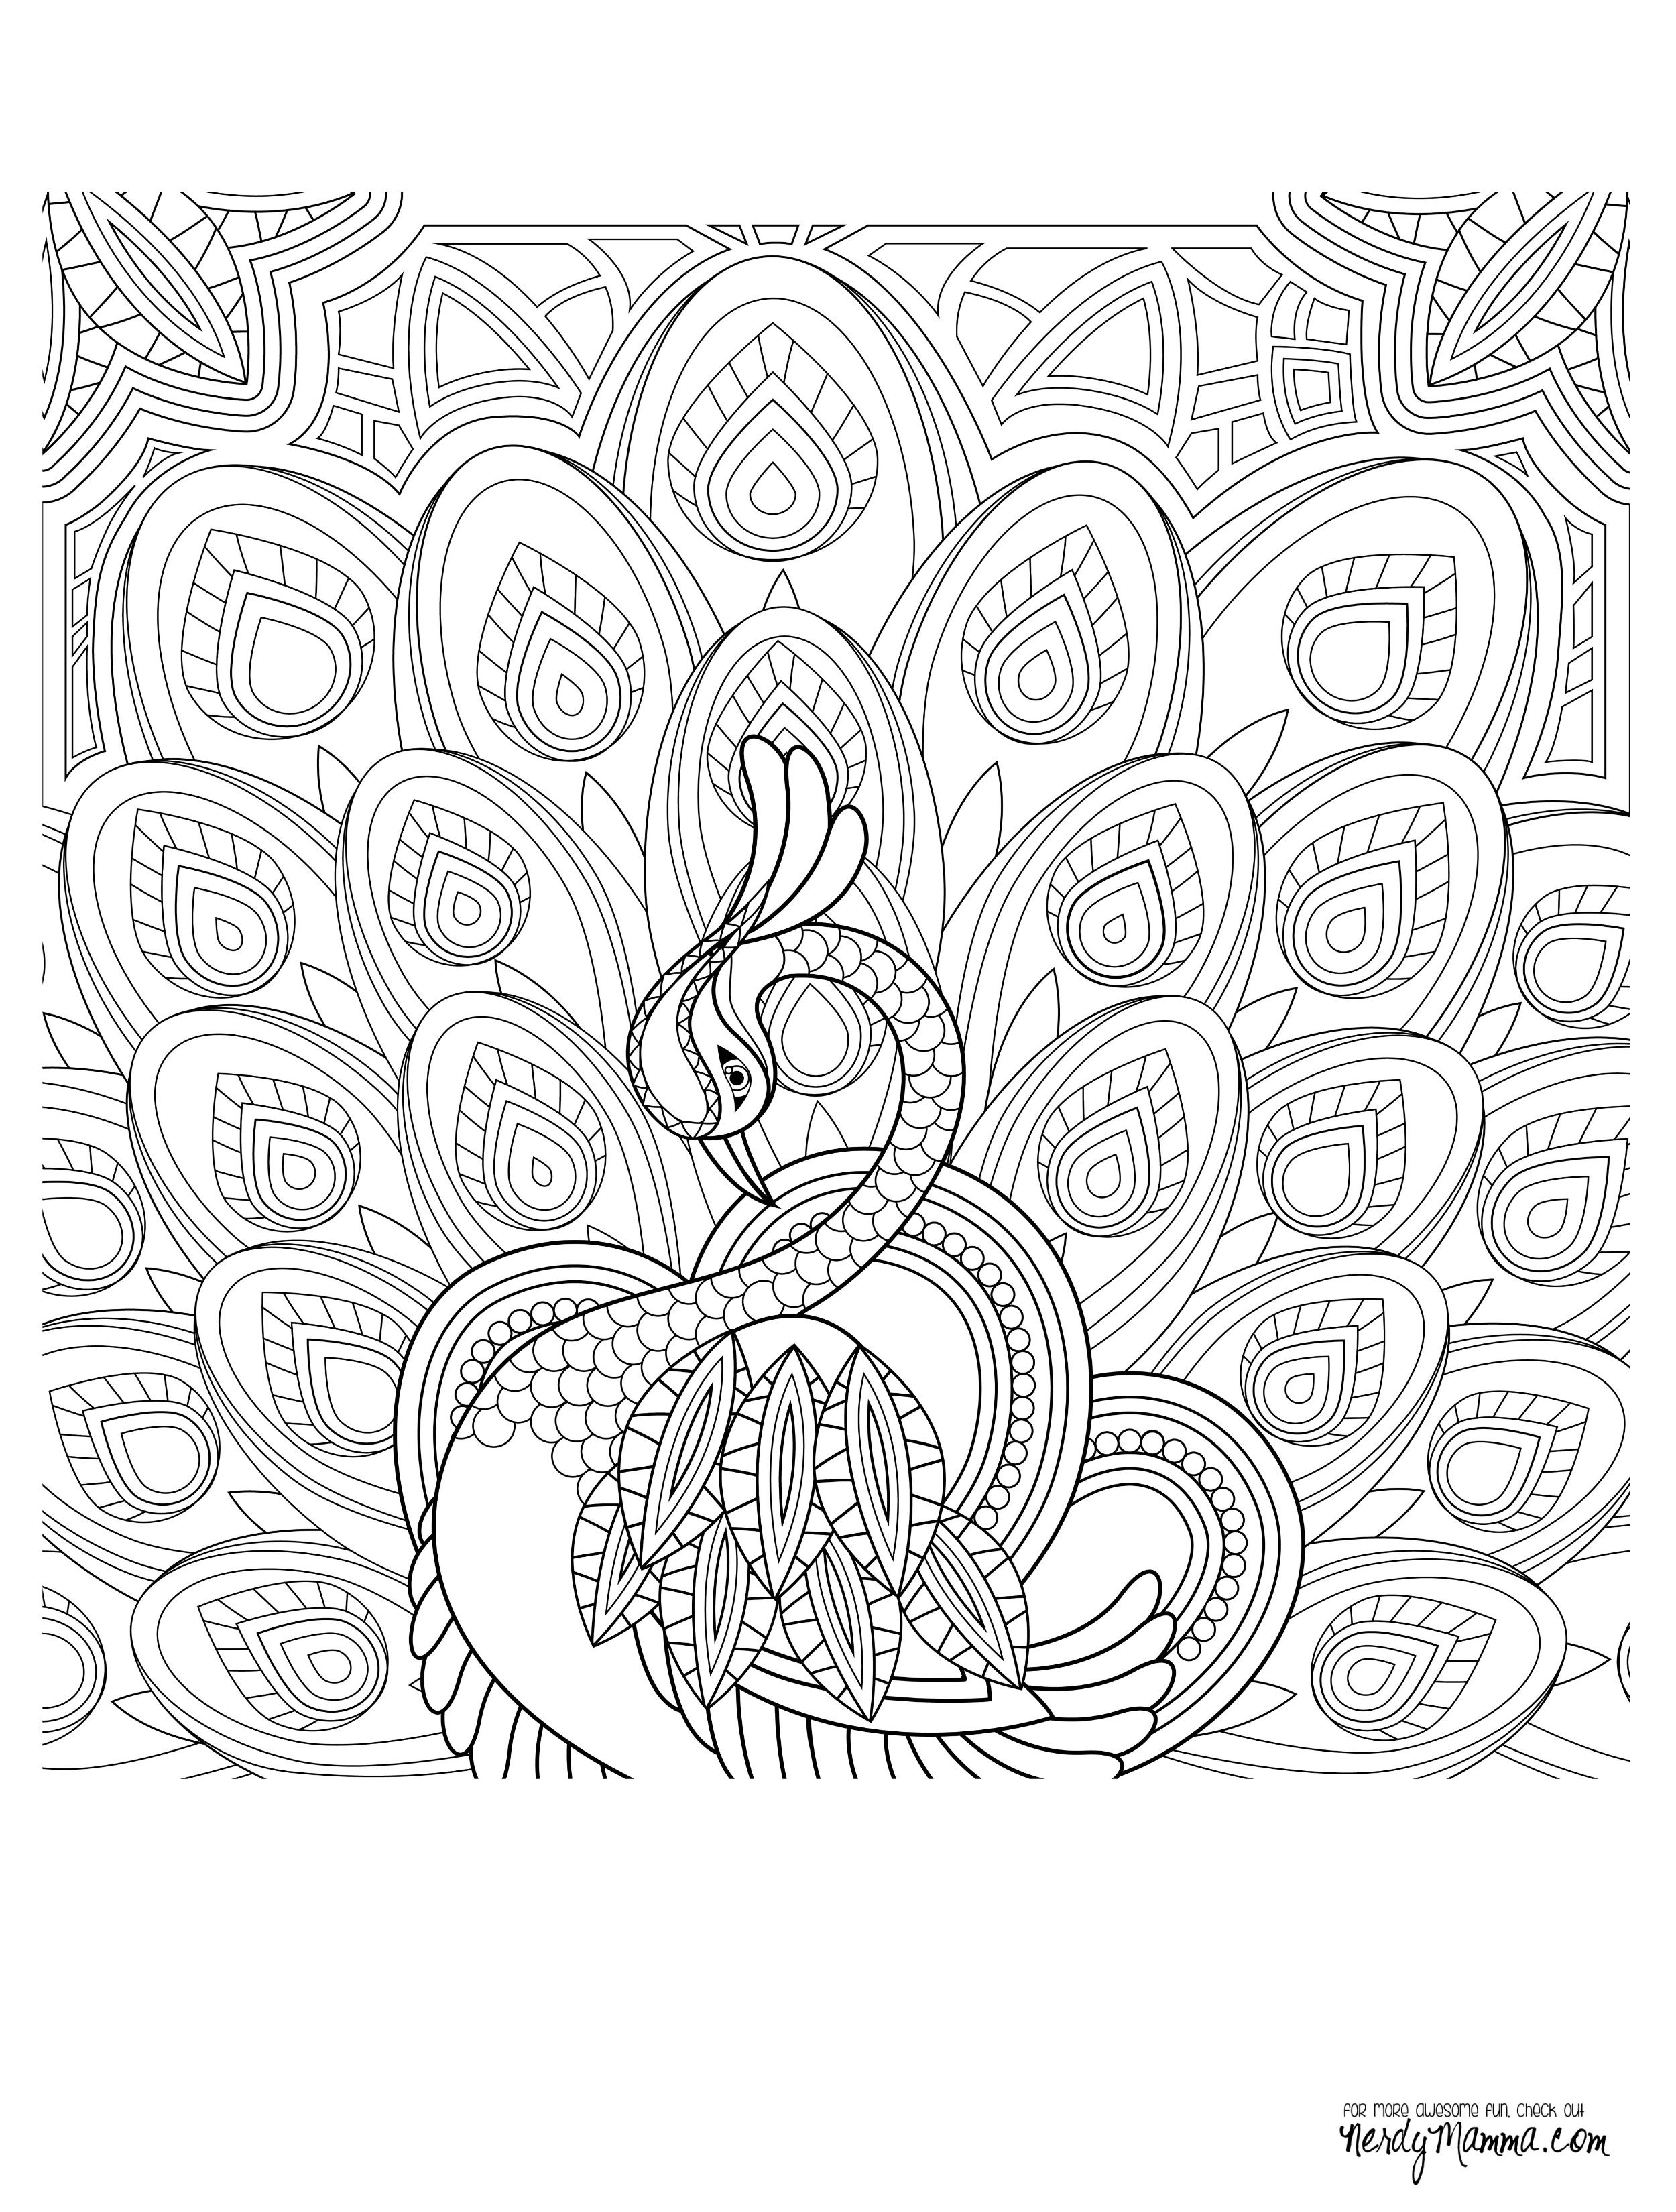 11 Free Printable Adult Coloring Pages | my bedroom | Pinterest ...